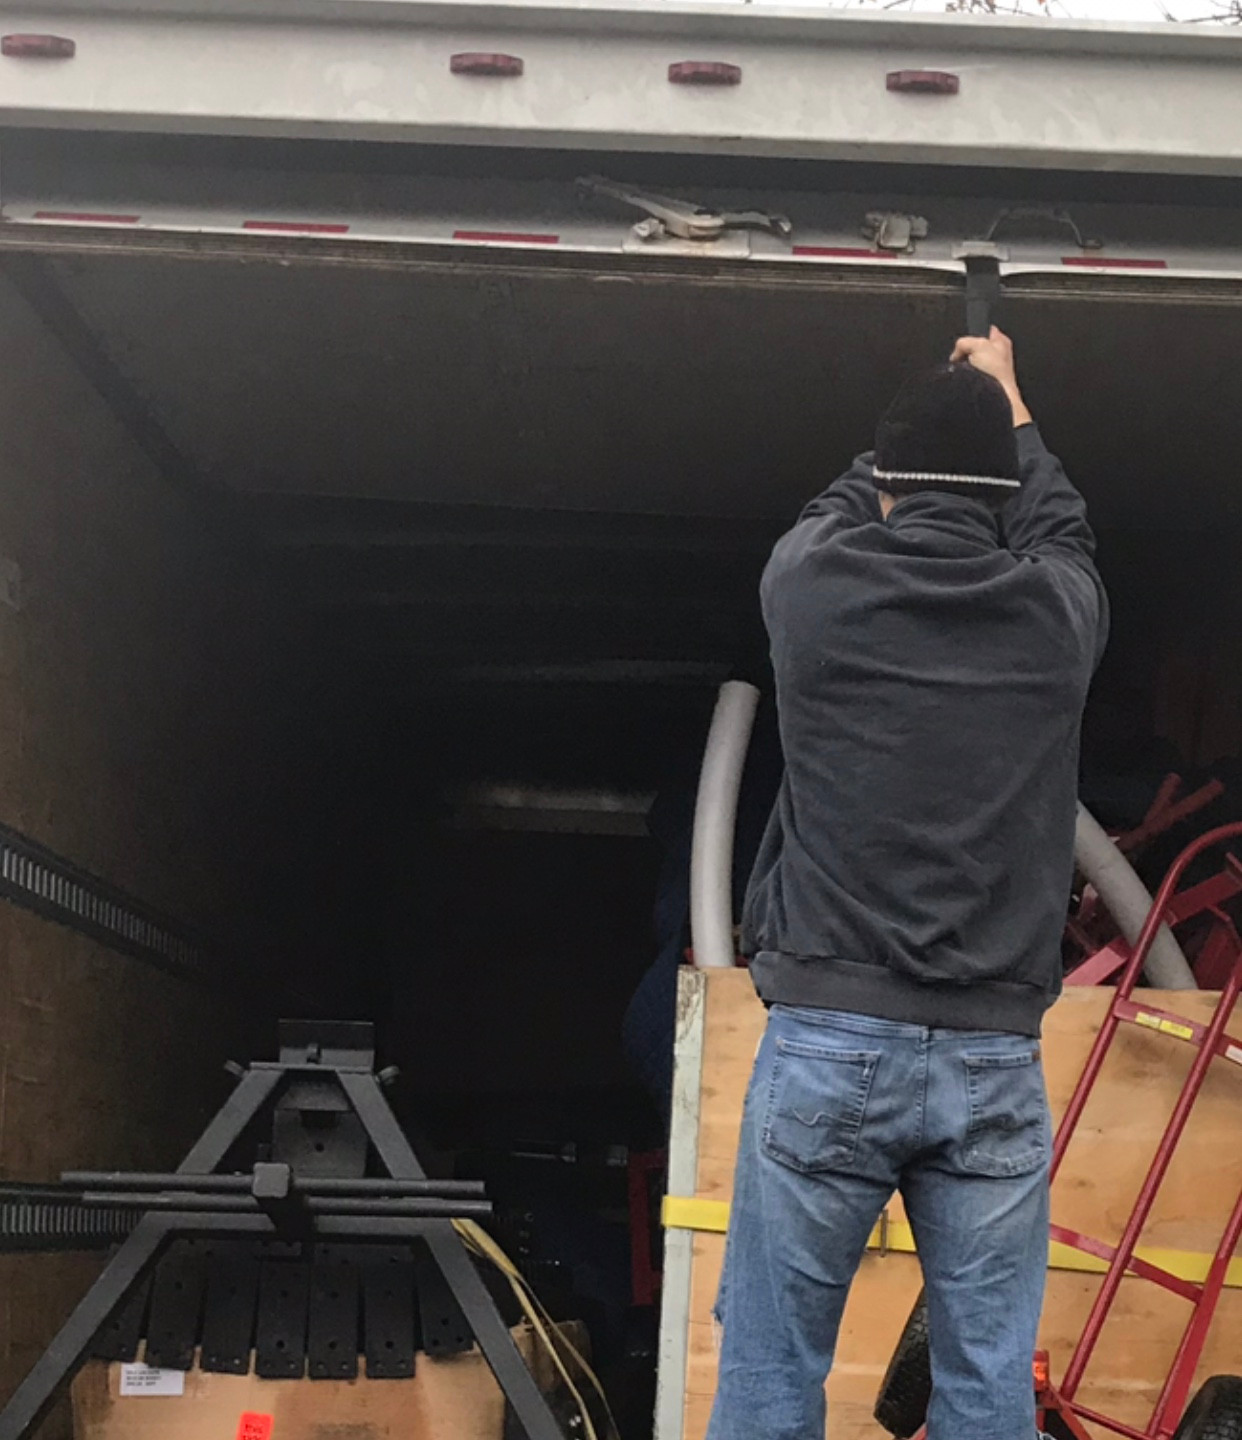 Packing the truck